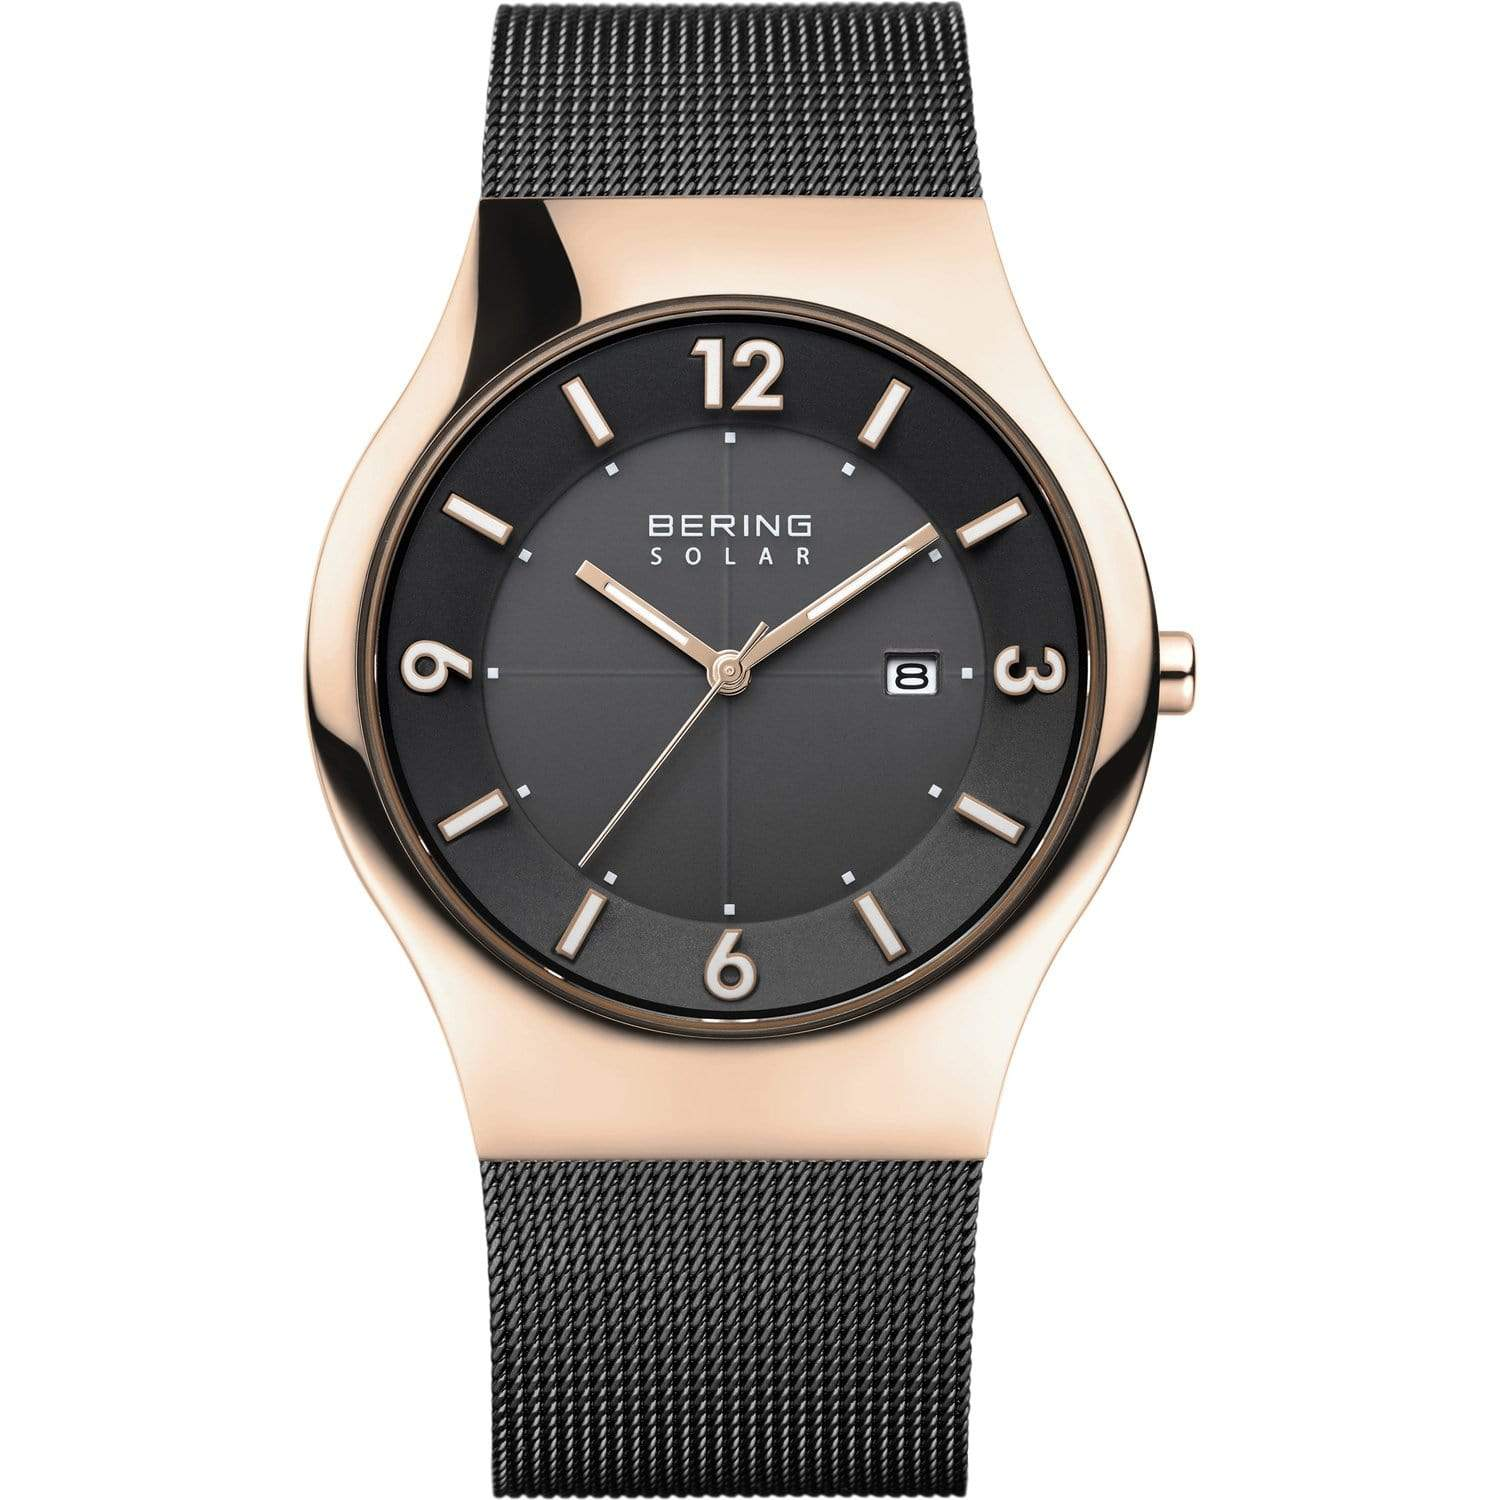 BERING Solar 40mm Polished Rose Gold Case Black Dial Men's Watch 14440-166